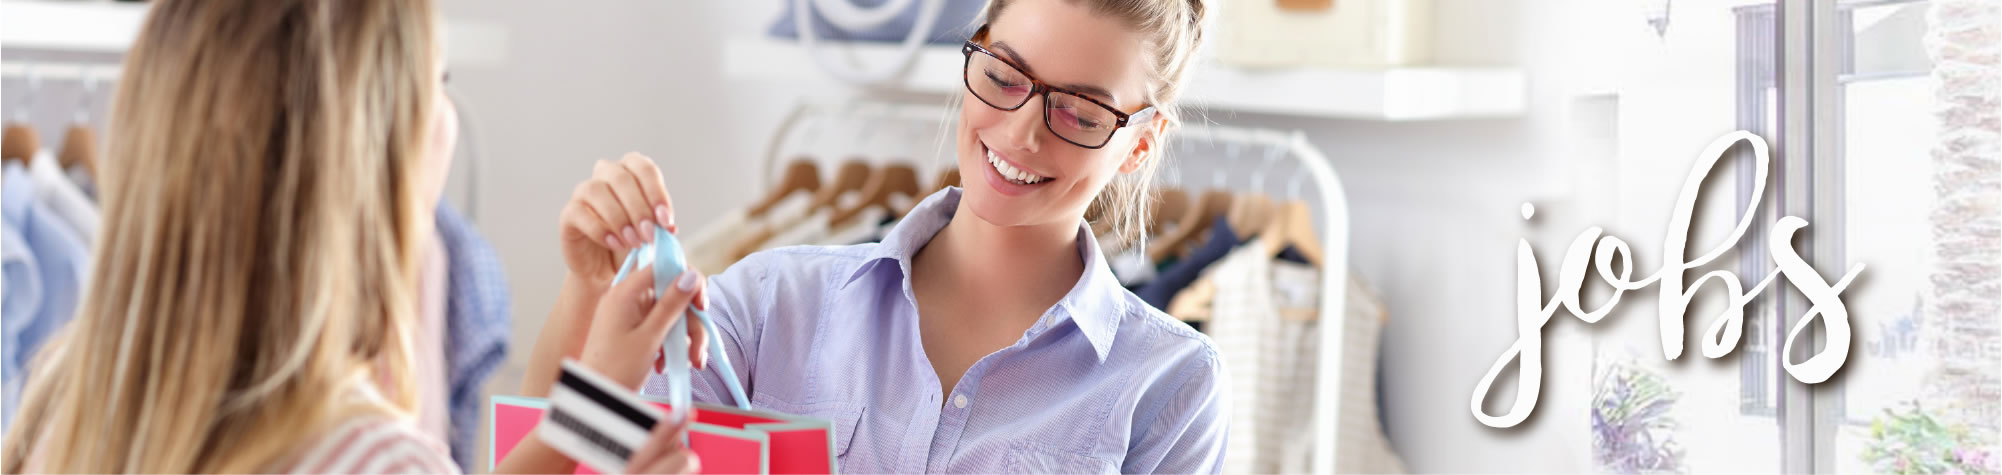 Jobs / Woman working in store